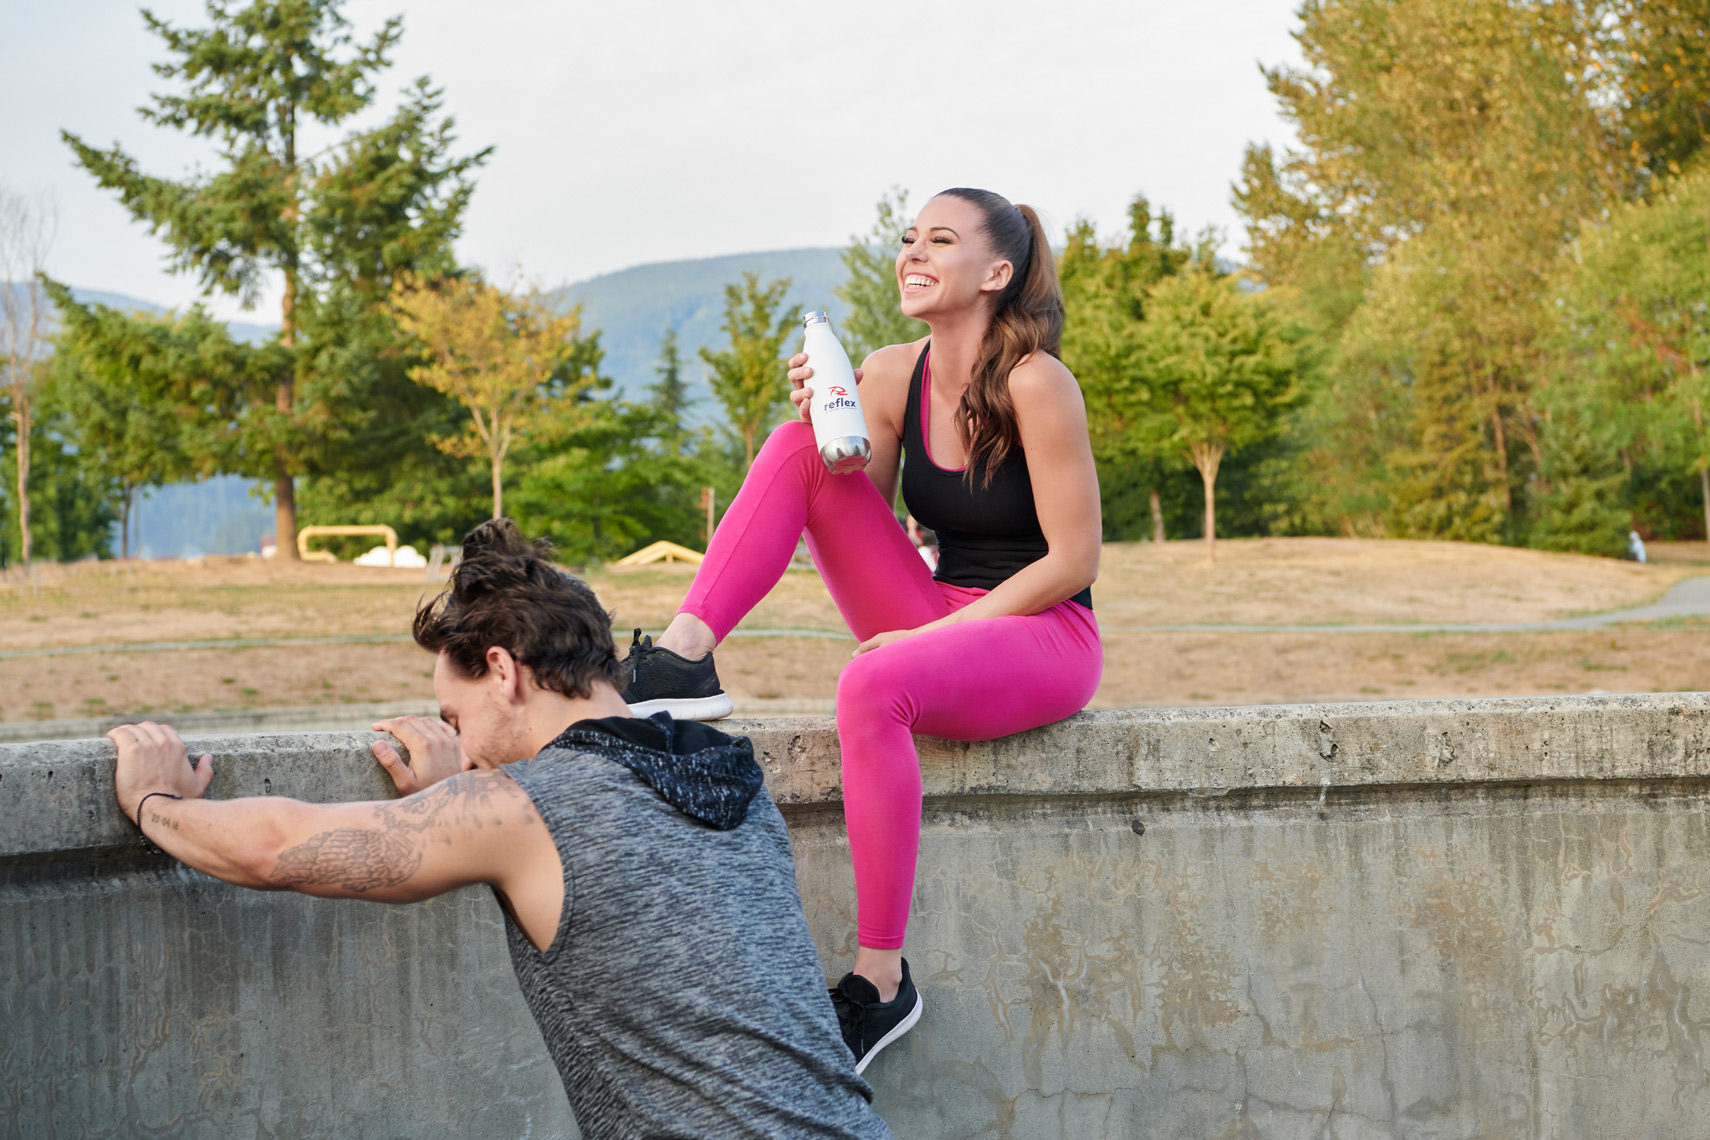 2017-Vancouver-SportsandFitness-Photographer-ErichSaide-Advertising-Reflex-Supplements-Laughing-Workout